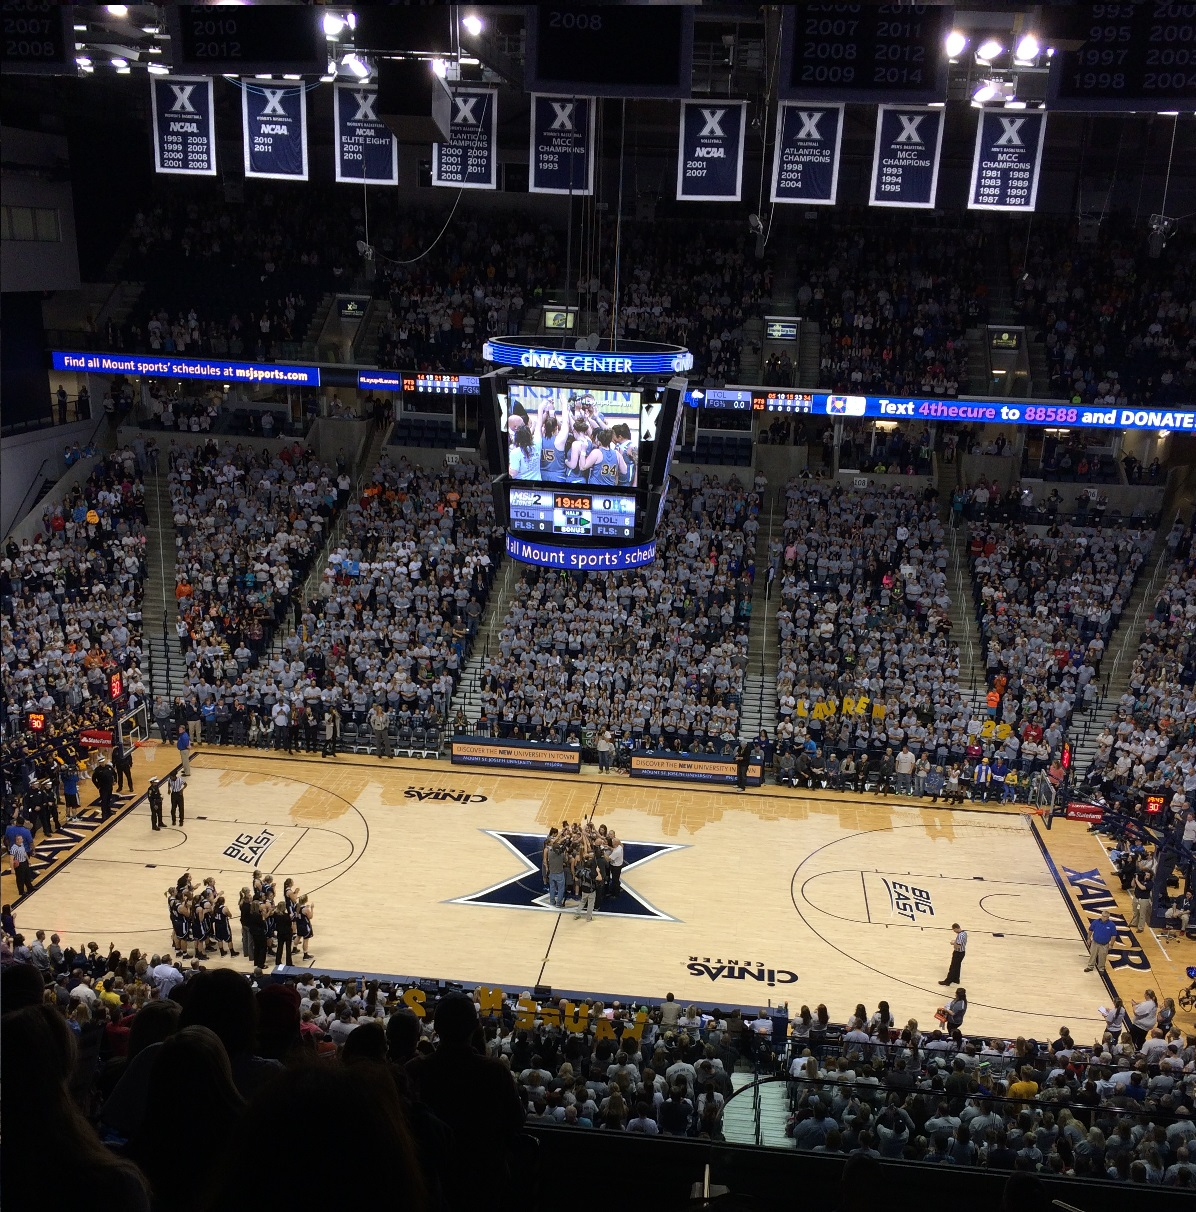 Xavier hosts Lauren Hill's first collegiate game